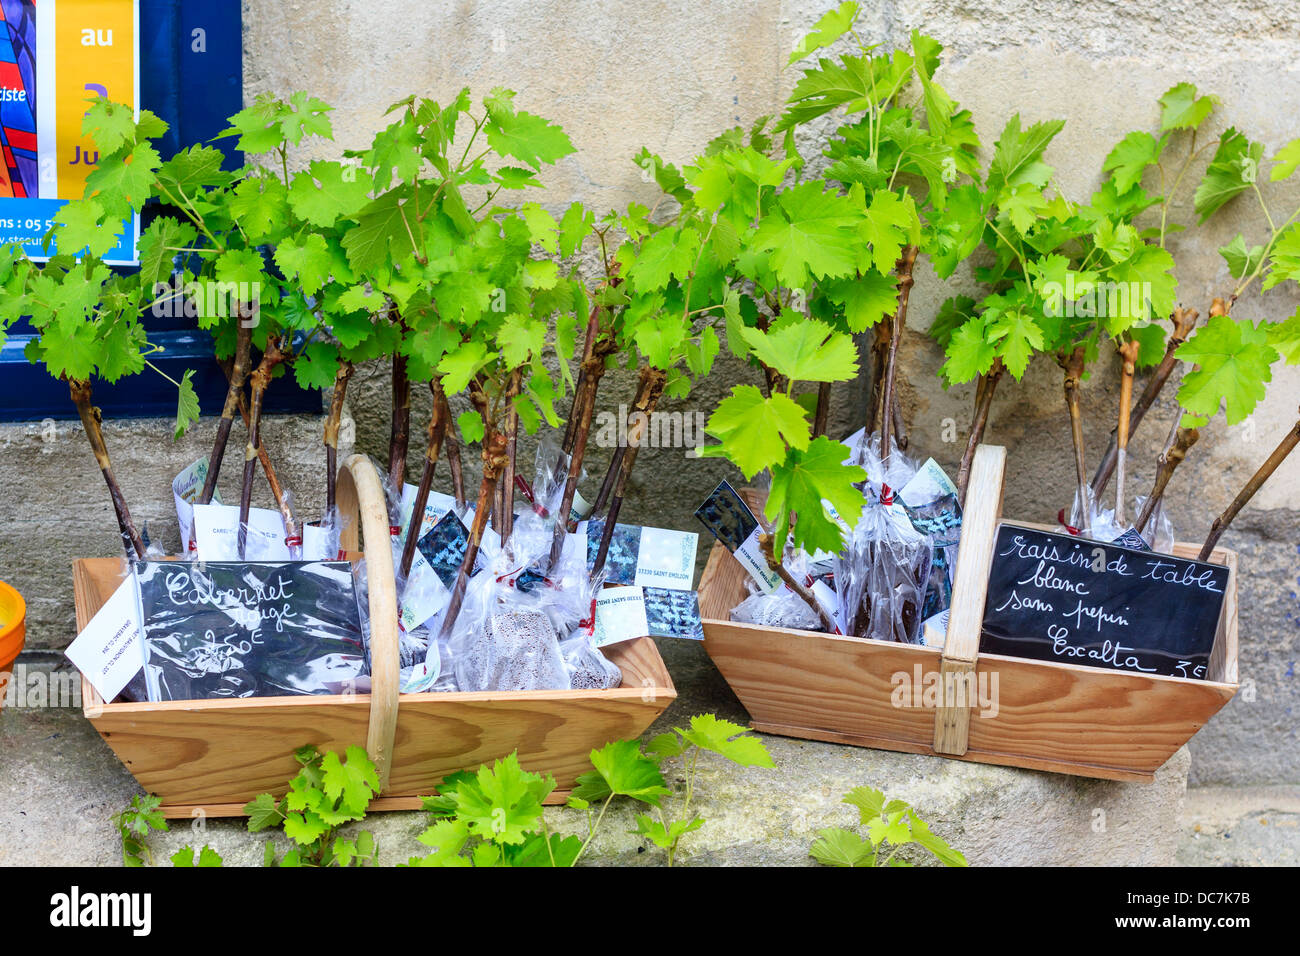 Young grape shoots available for sale in St-Emilion, France - Stock Image